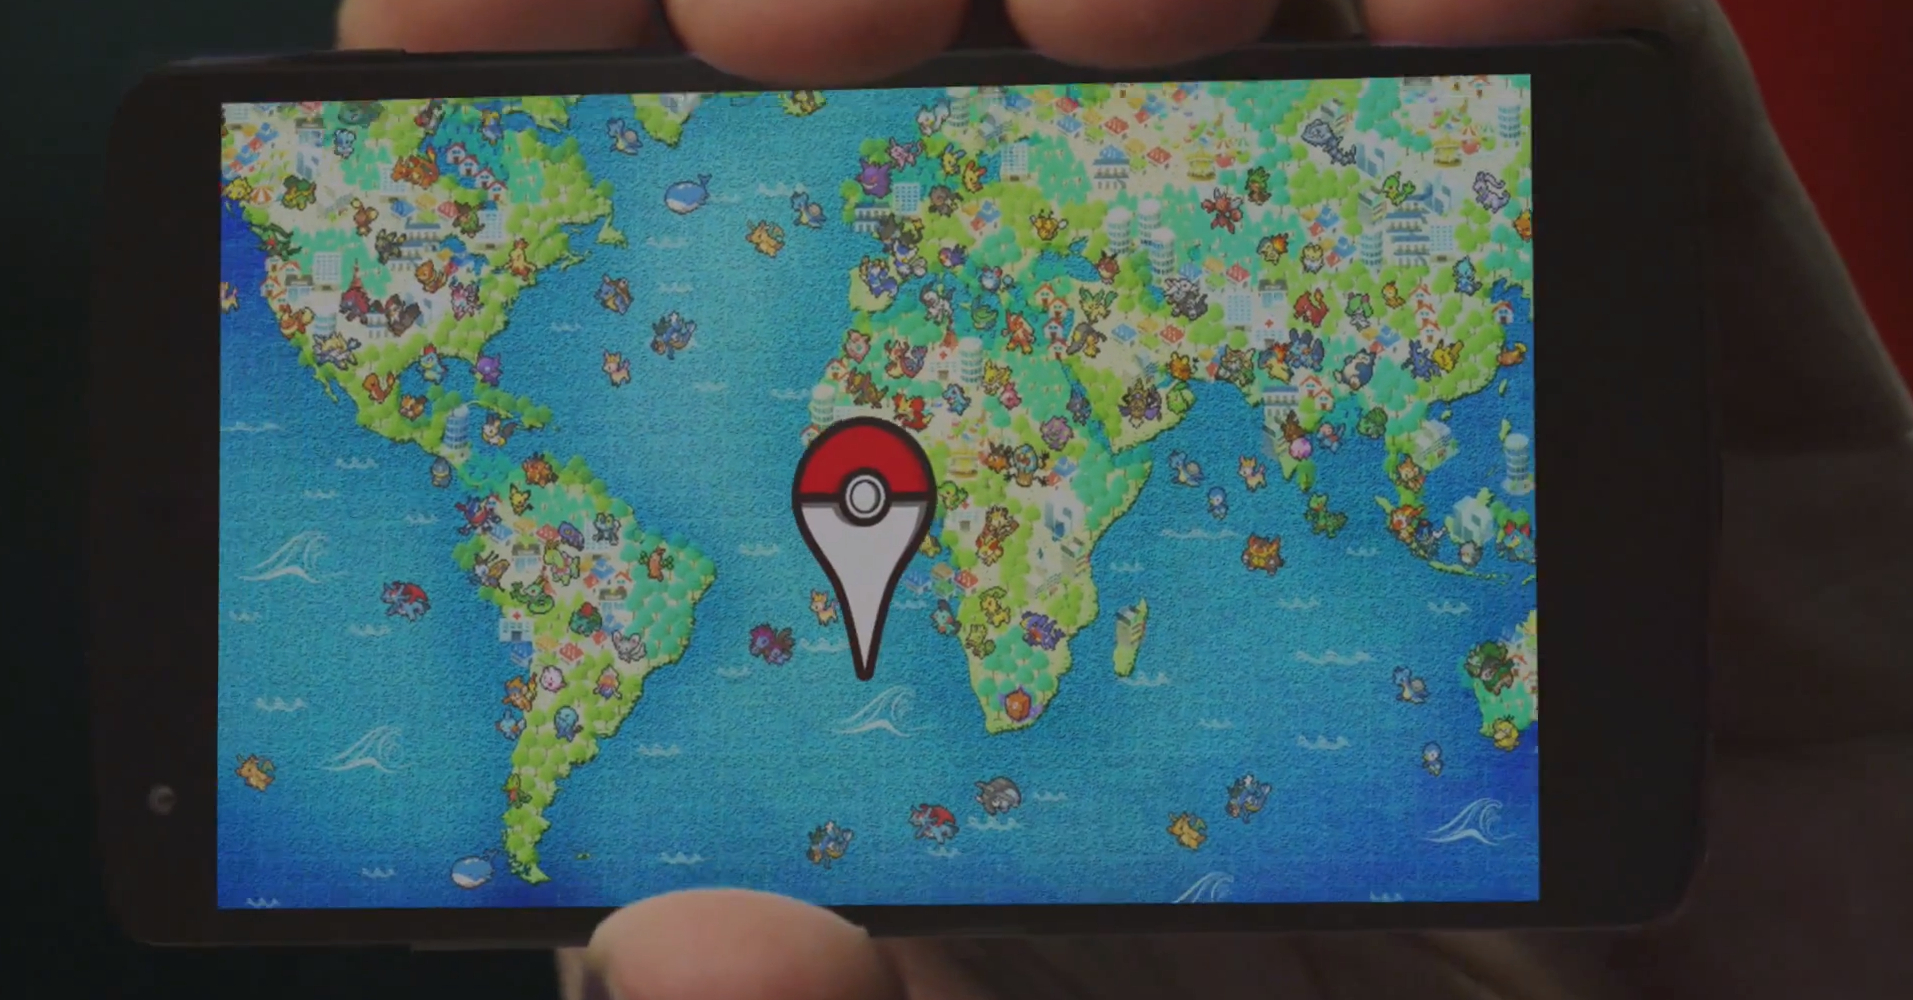 April fools google maps now tracking pokemon creates challenge to google is starting april fools day early with a little help from game freak and nintendo introducing the google maps pokemon challenge gumiabroncs Images